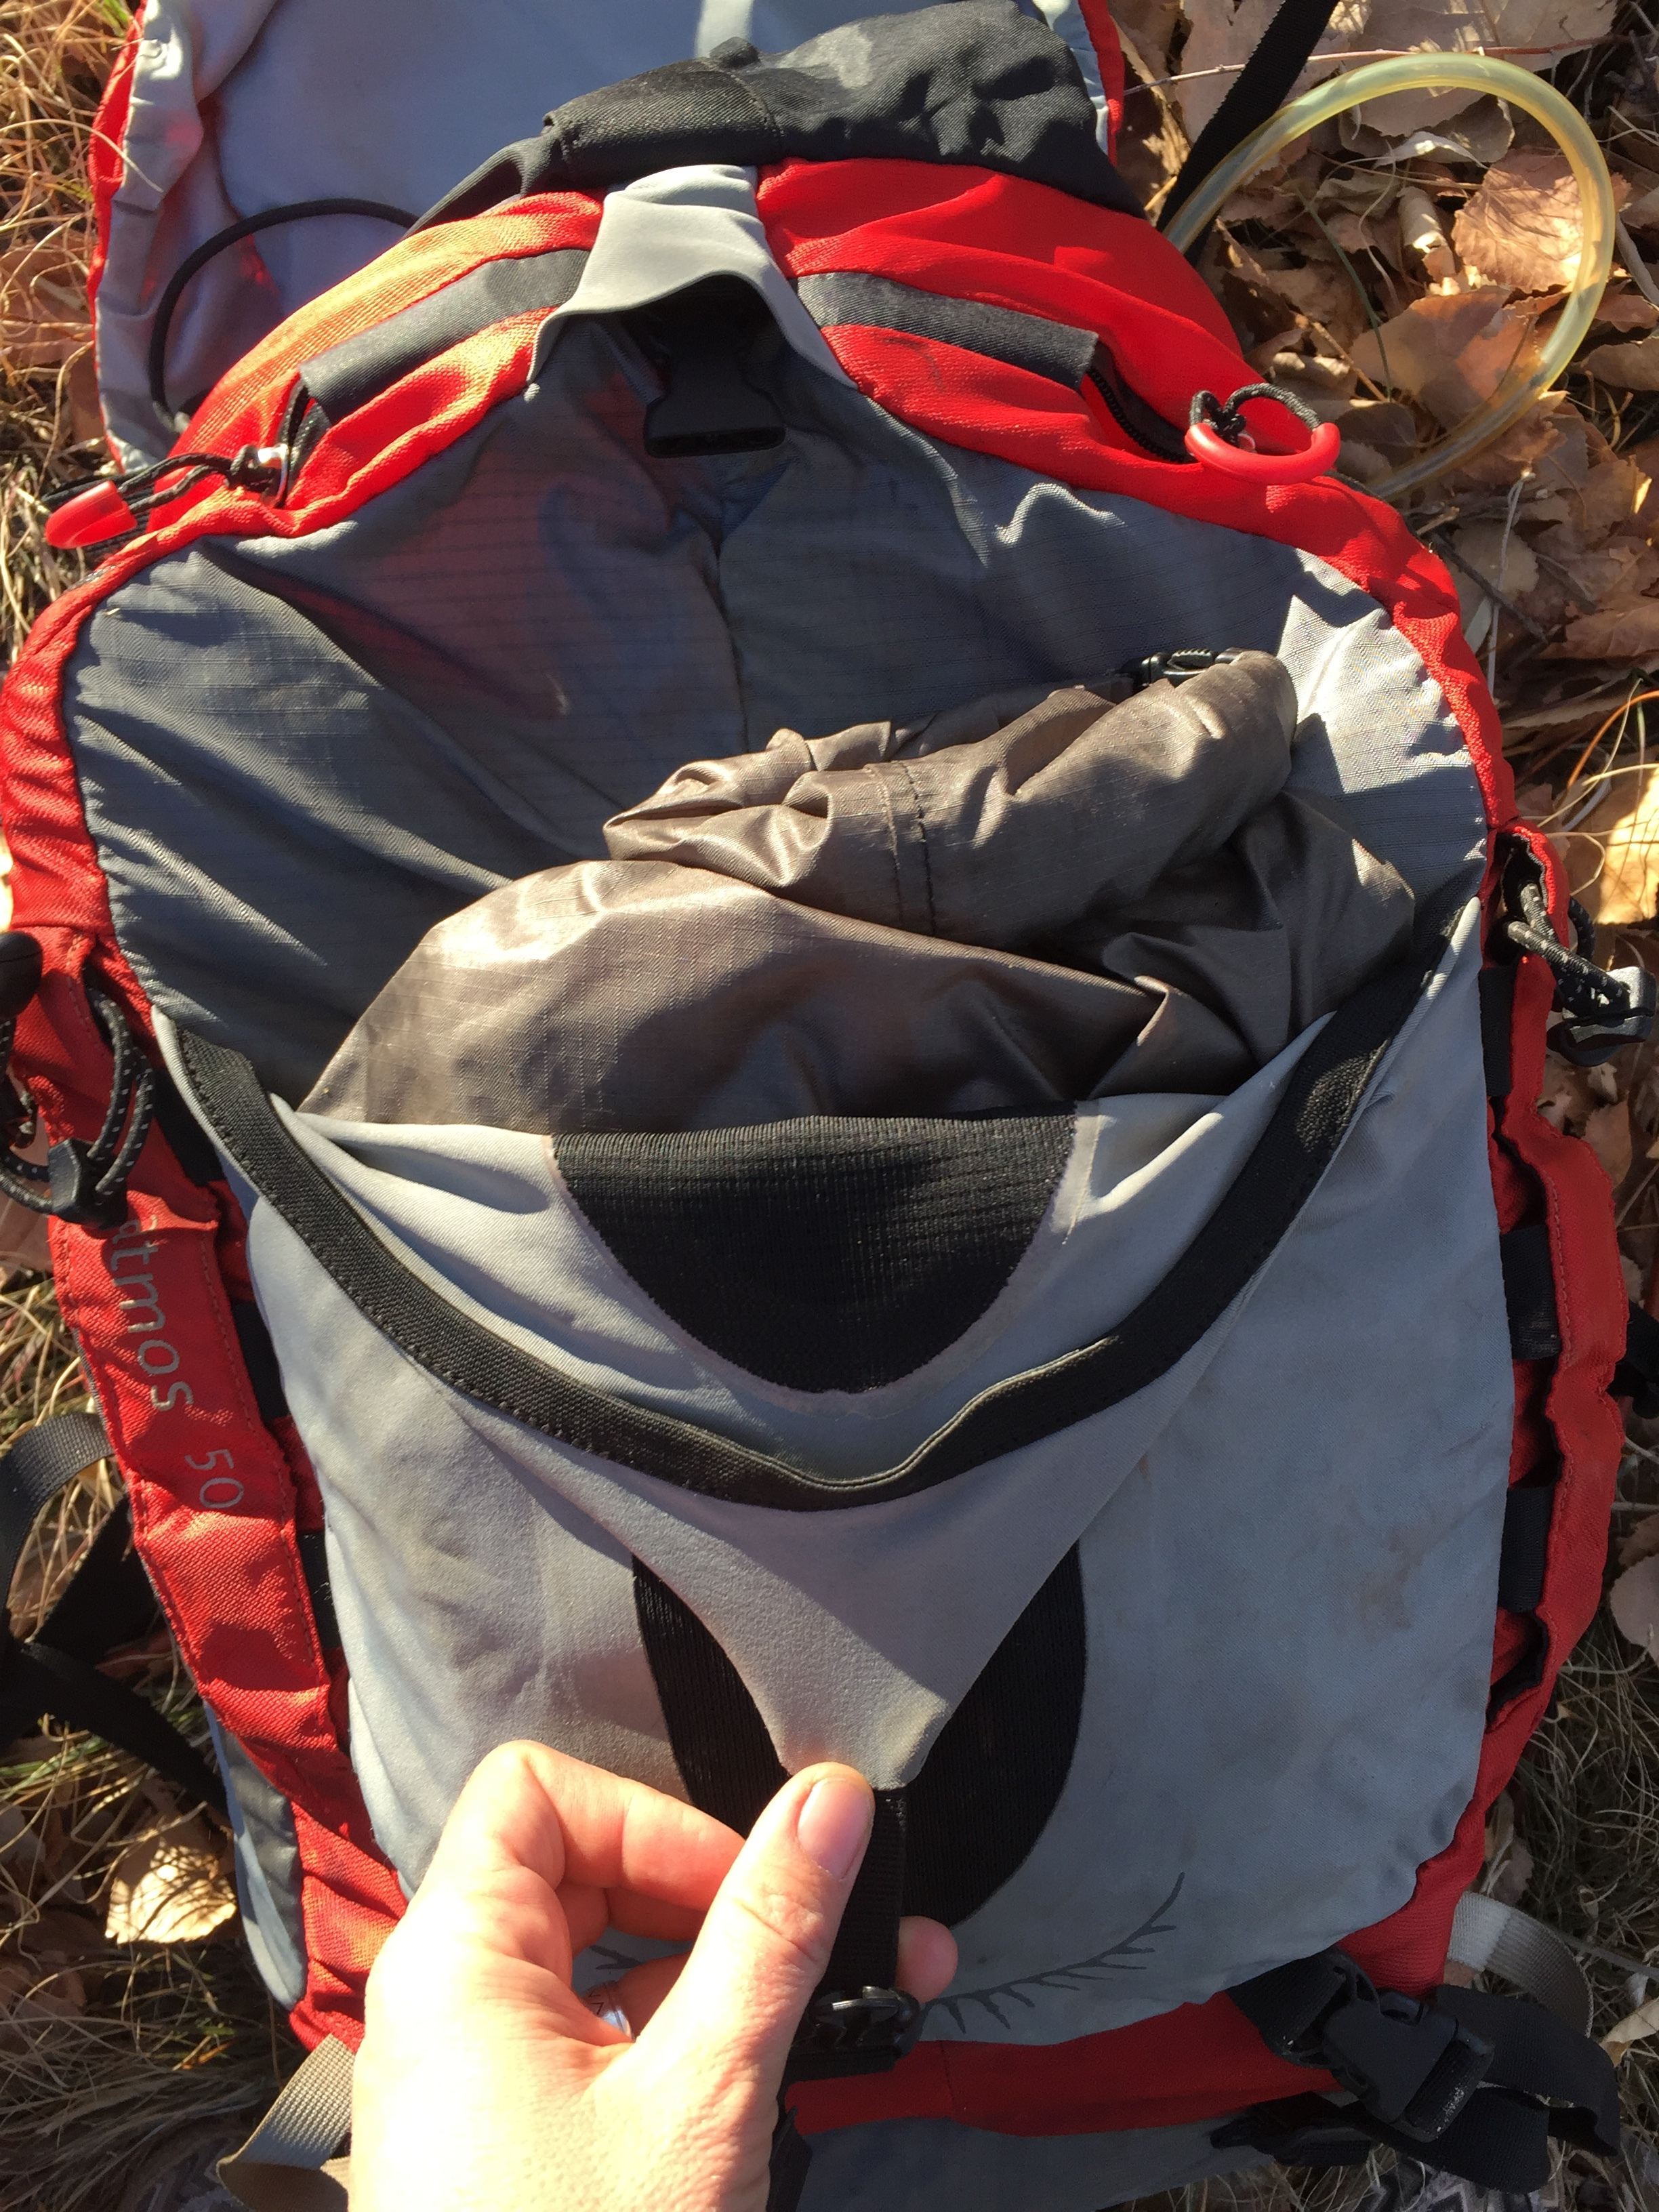 I kept my food bag in the front pouch of my pack. This made snack access easy, and kept all food items together for easy isolation at night. You don't want critters in your tent, so making sure there are no food bits in weird places is key.